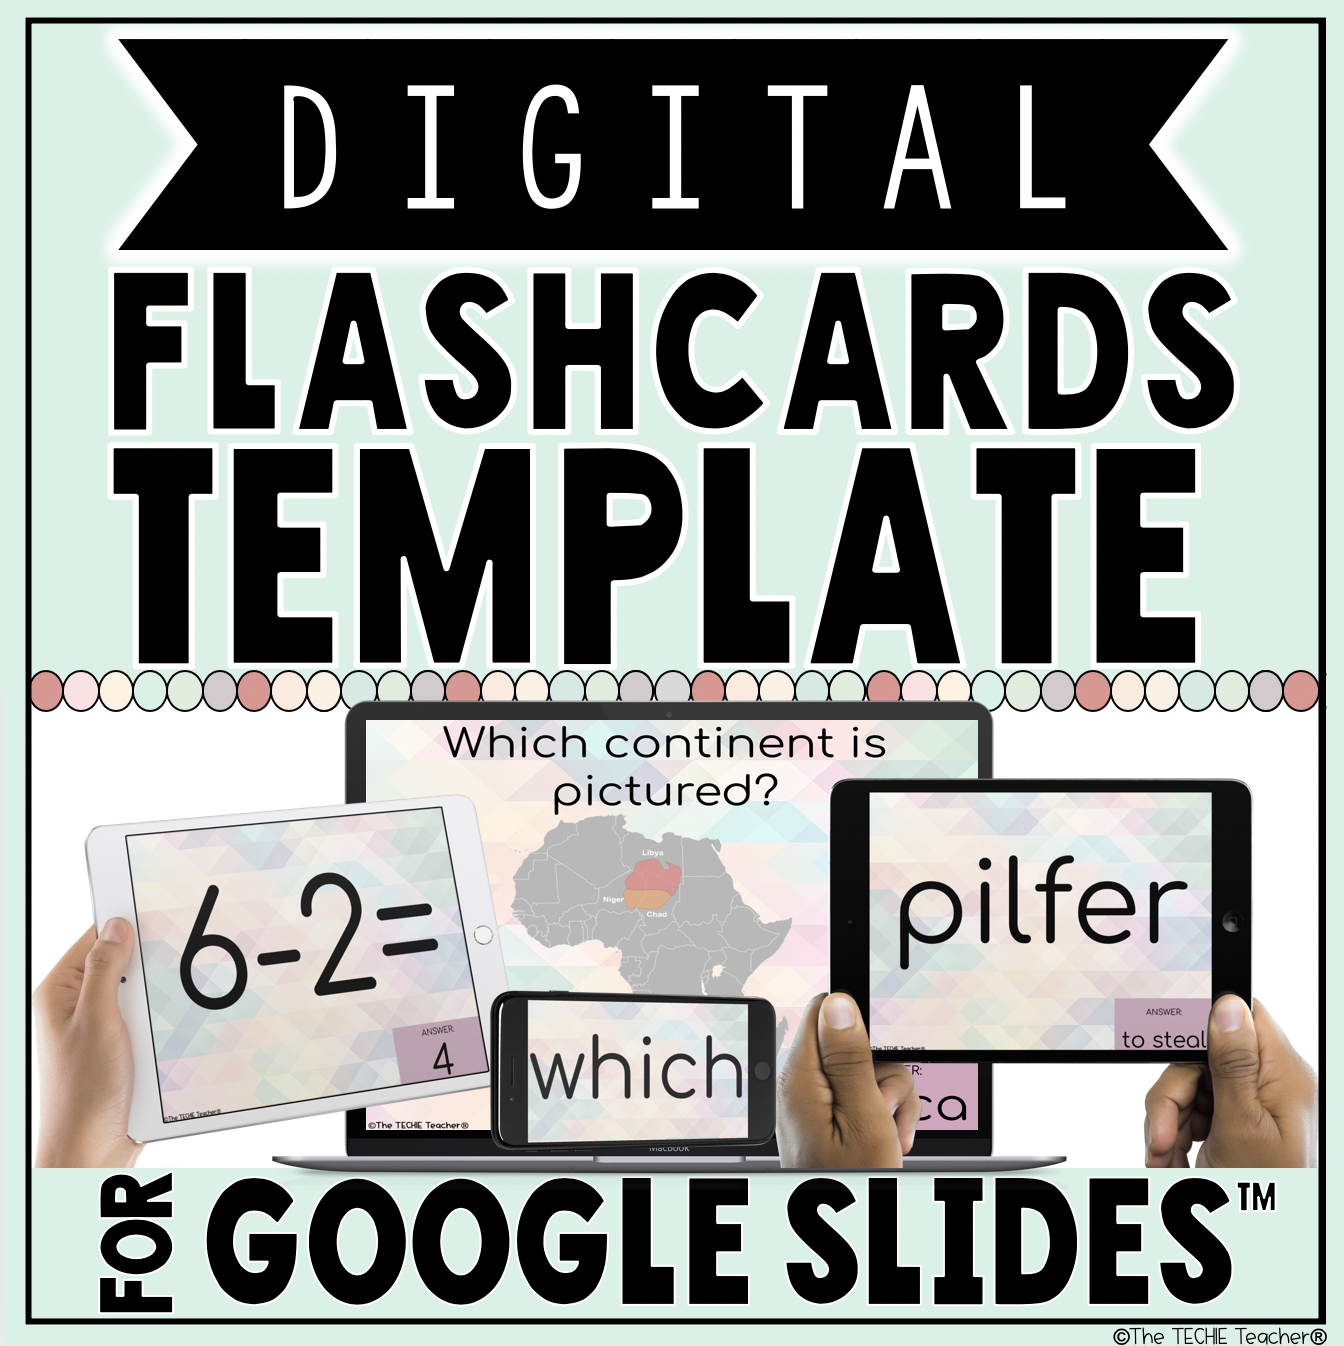 https://www.teacherspayteachers.com/Product/DIGITAL-FLASHCARDS-TEMPLATE-IN-GOOGLE-SLIDES-4359992